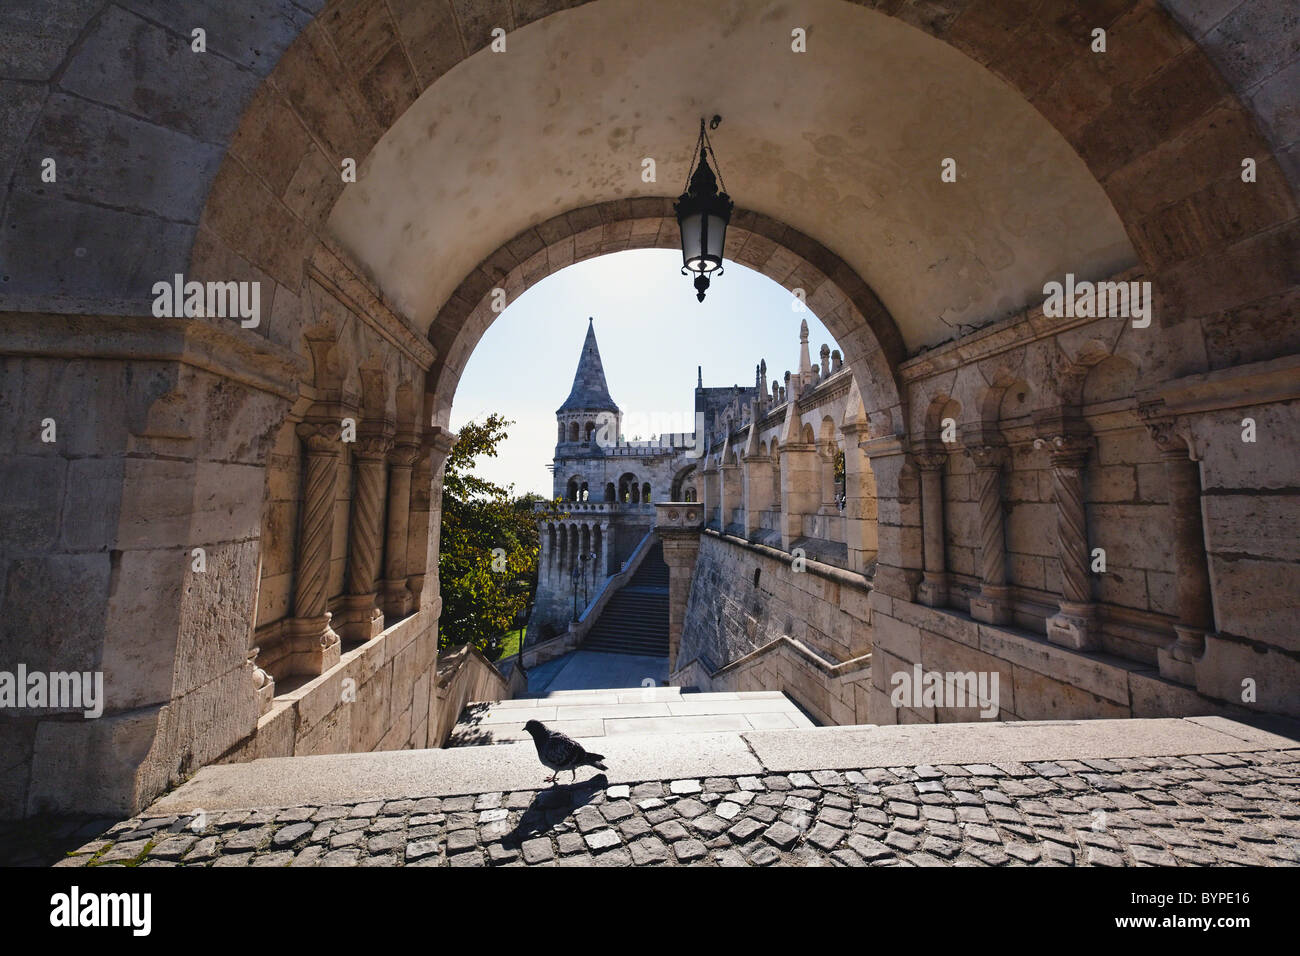 View Through an Arch, Fisherman's Bastion, Budapest, Hungary - Stock Image